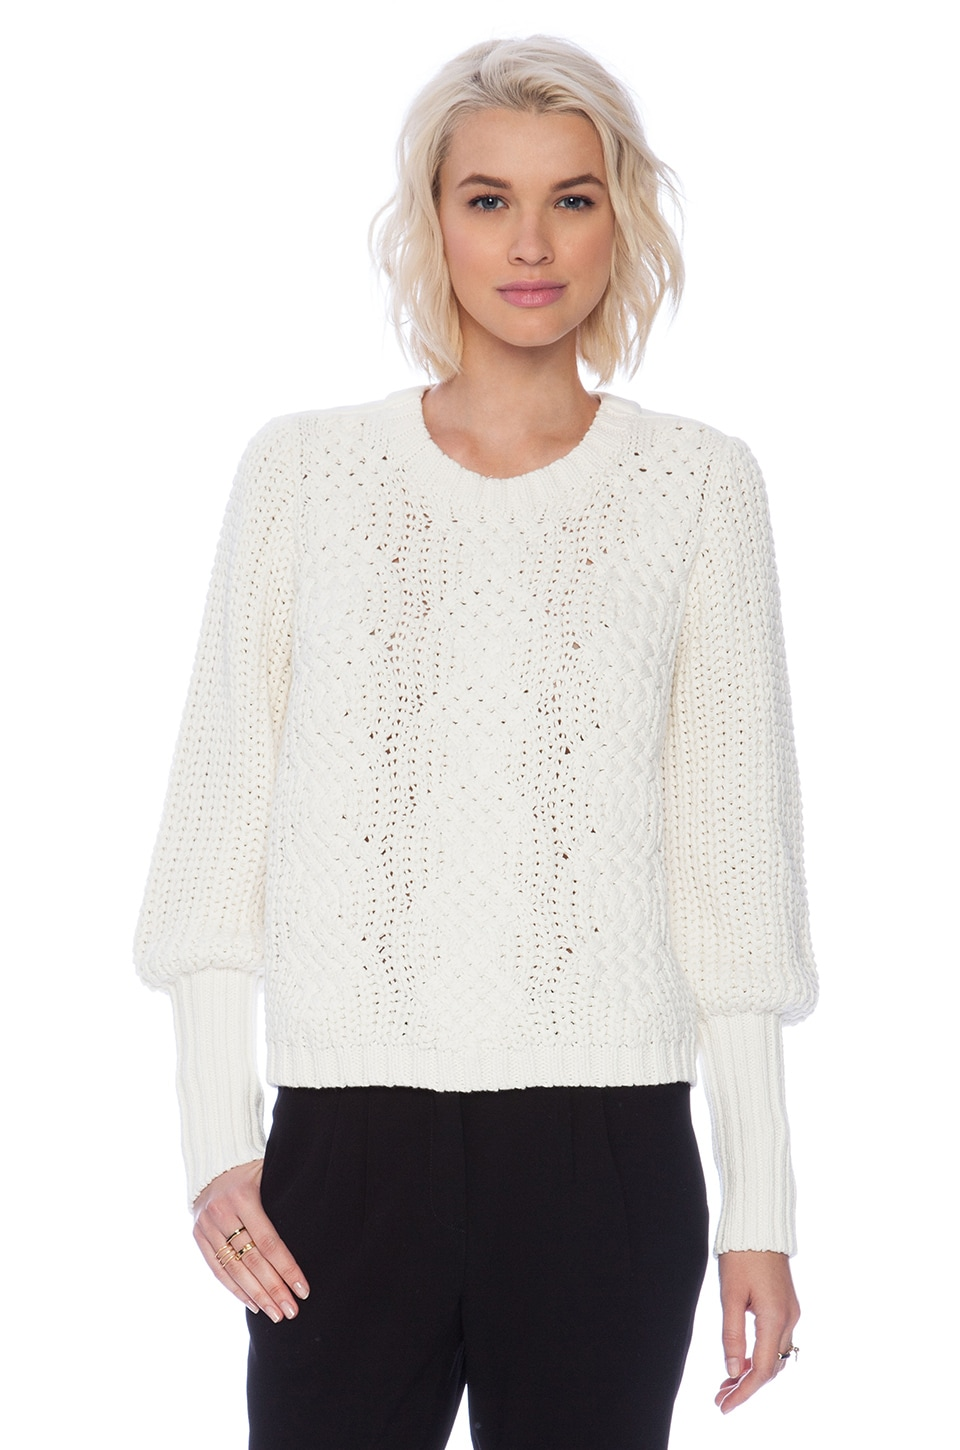 Sass & Bide Special Effects Sweater in Ivory